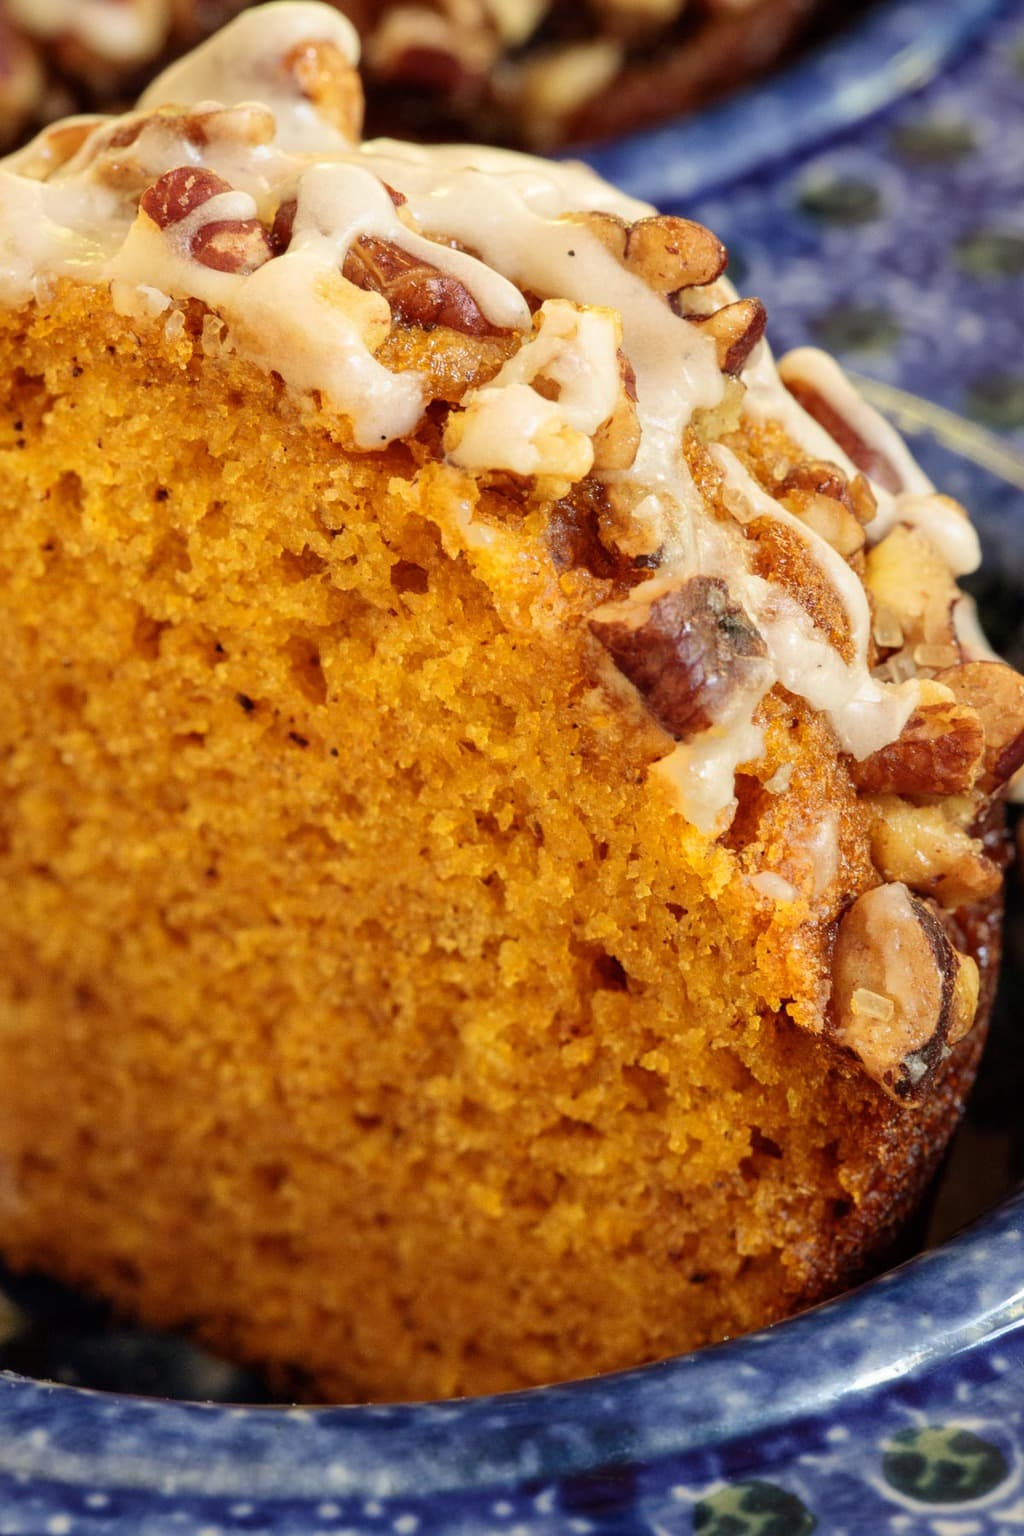 Vertical extreme closeup photo of the inside of an Easy Praline Pumpkin Muffin on a blue porcelain muffin baking tray.